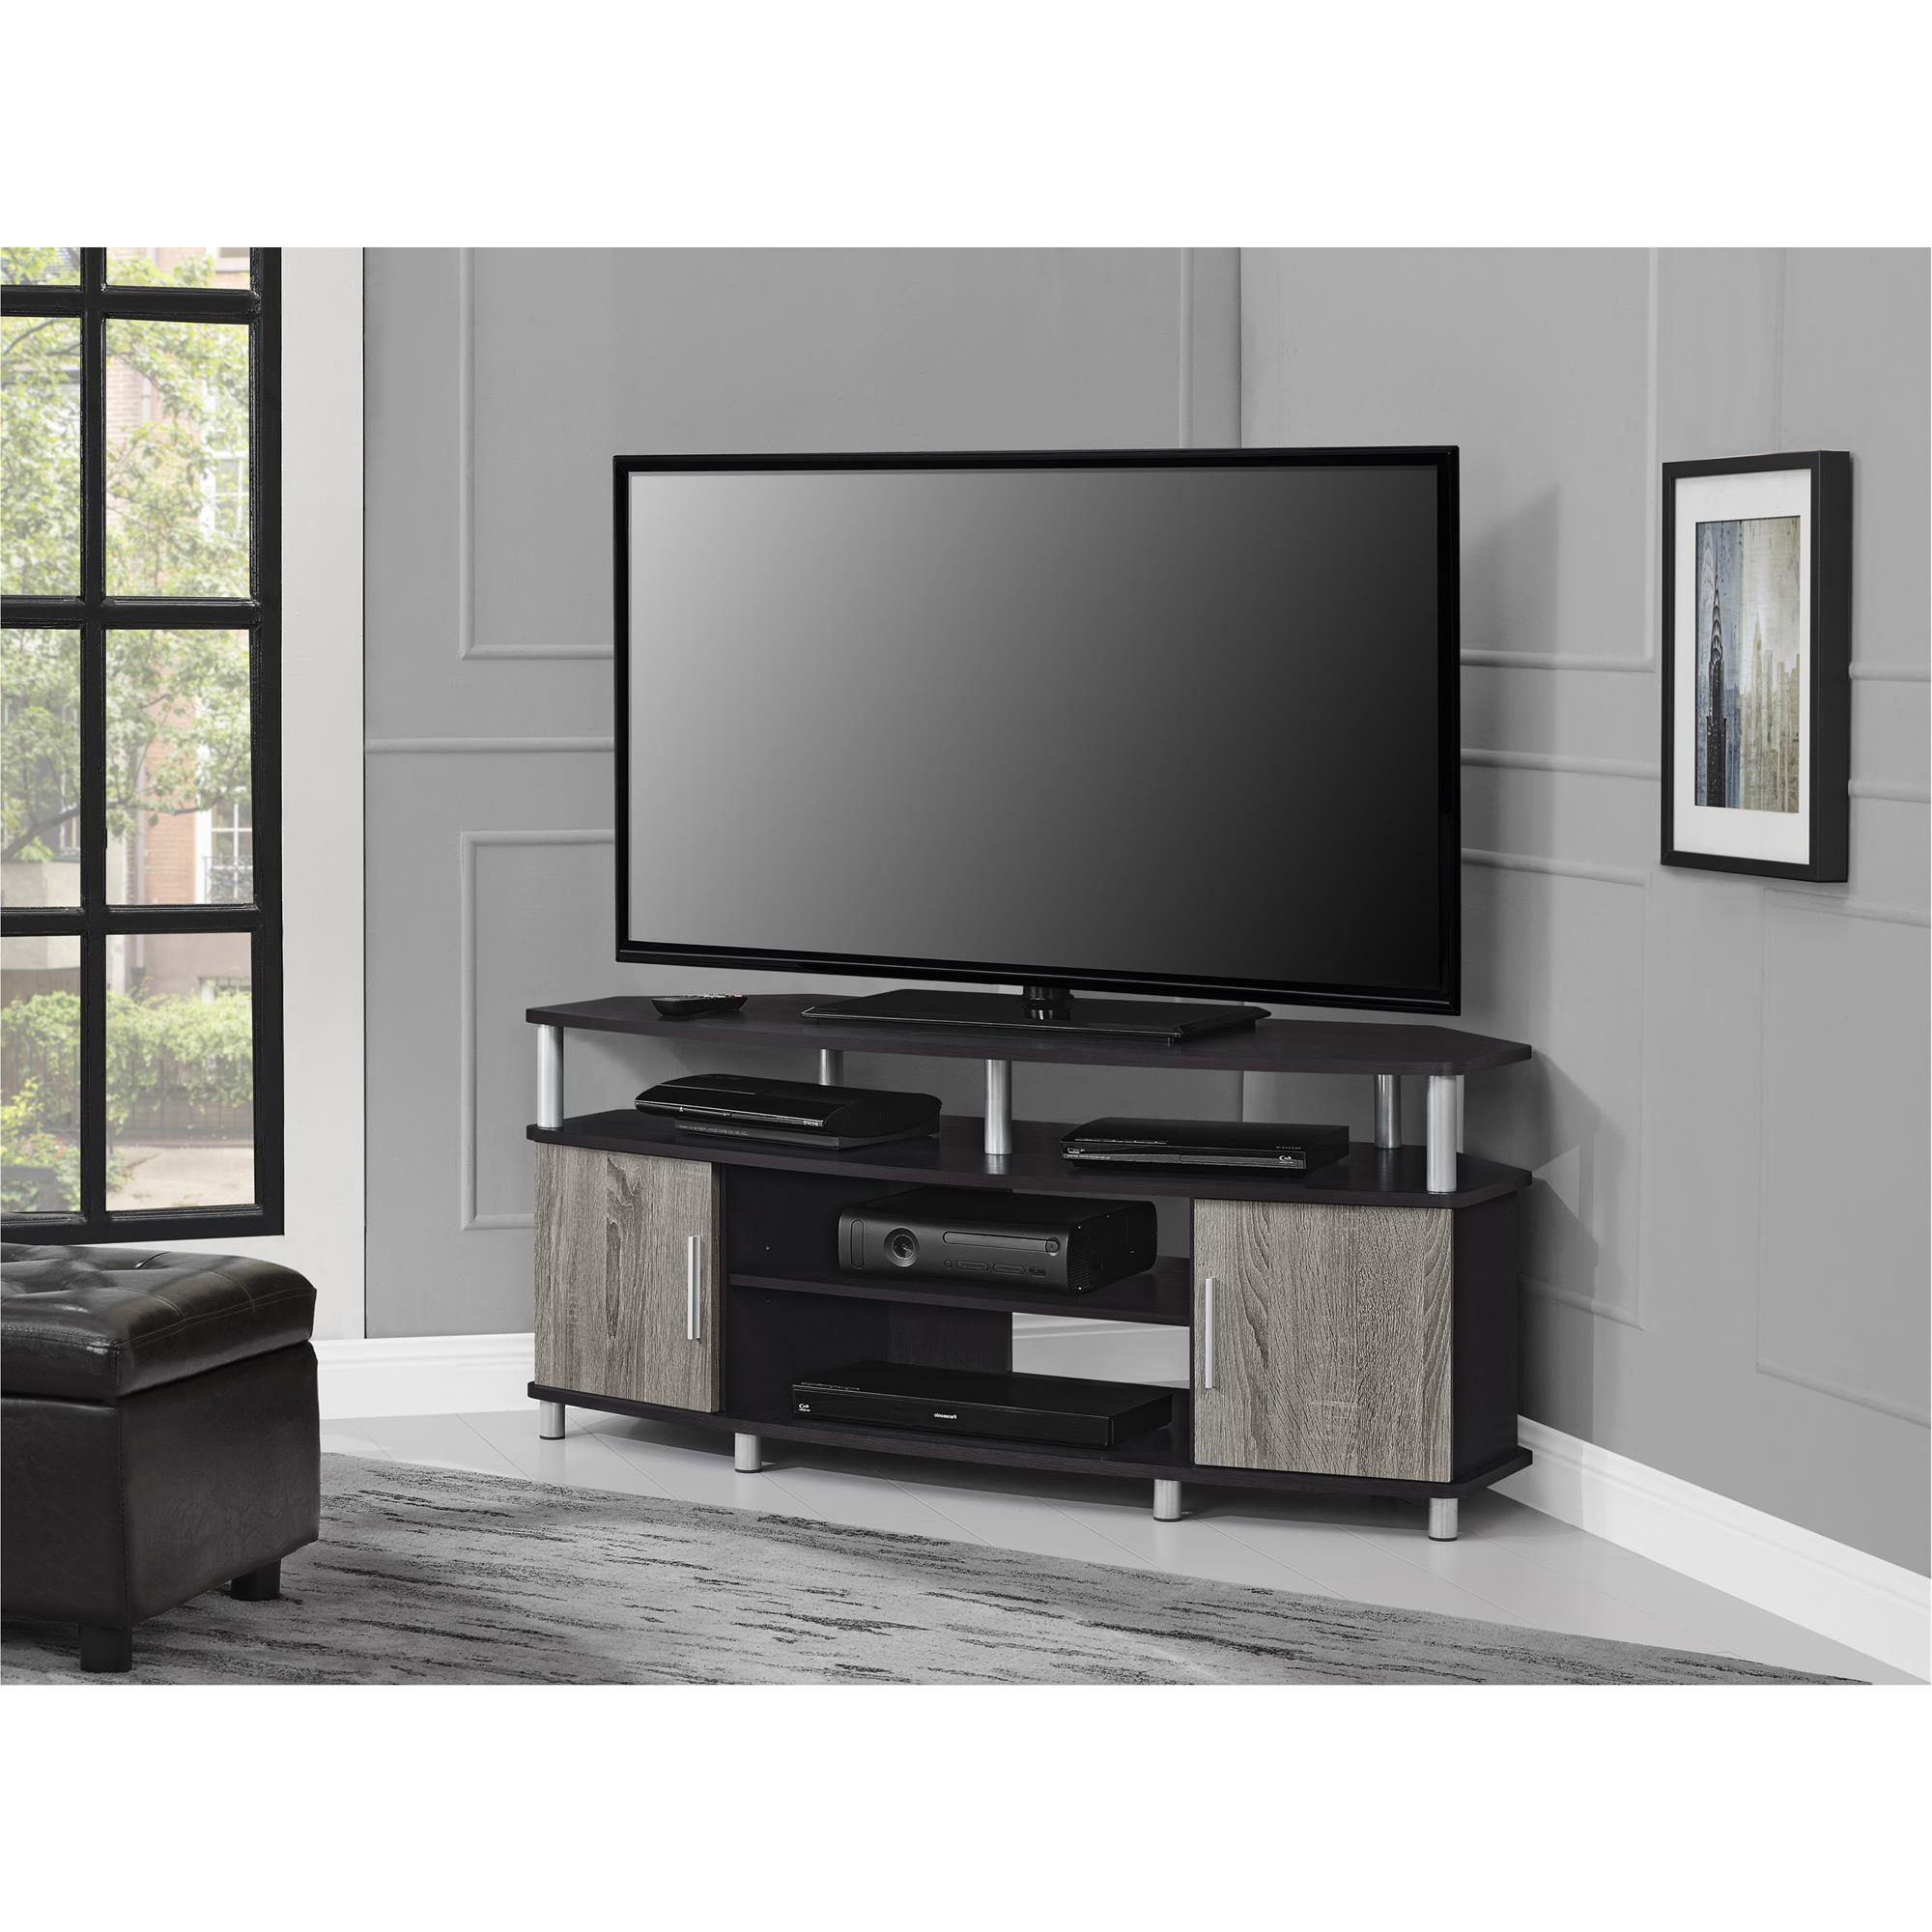 """Well Liked Silver Corner Tv Stands In Ameriwood Home Carson Corner Tv Stand For Tvs Up To 50"""" Wide, Black (View 20 of 20)"""